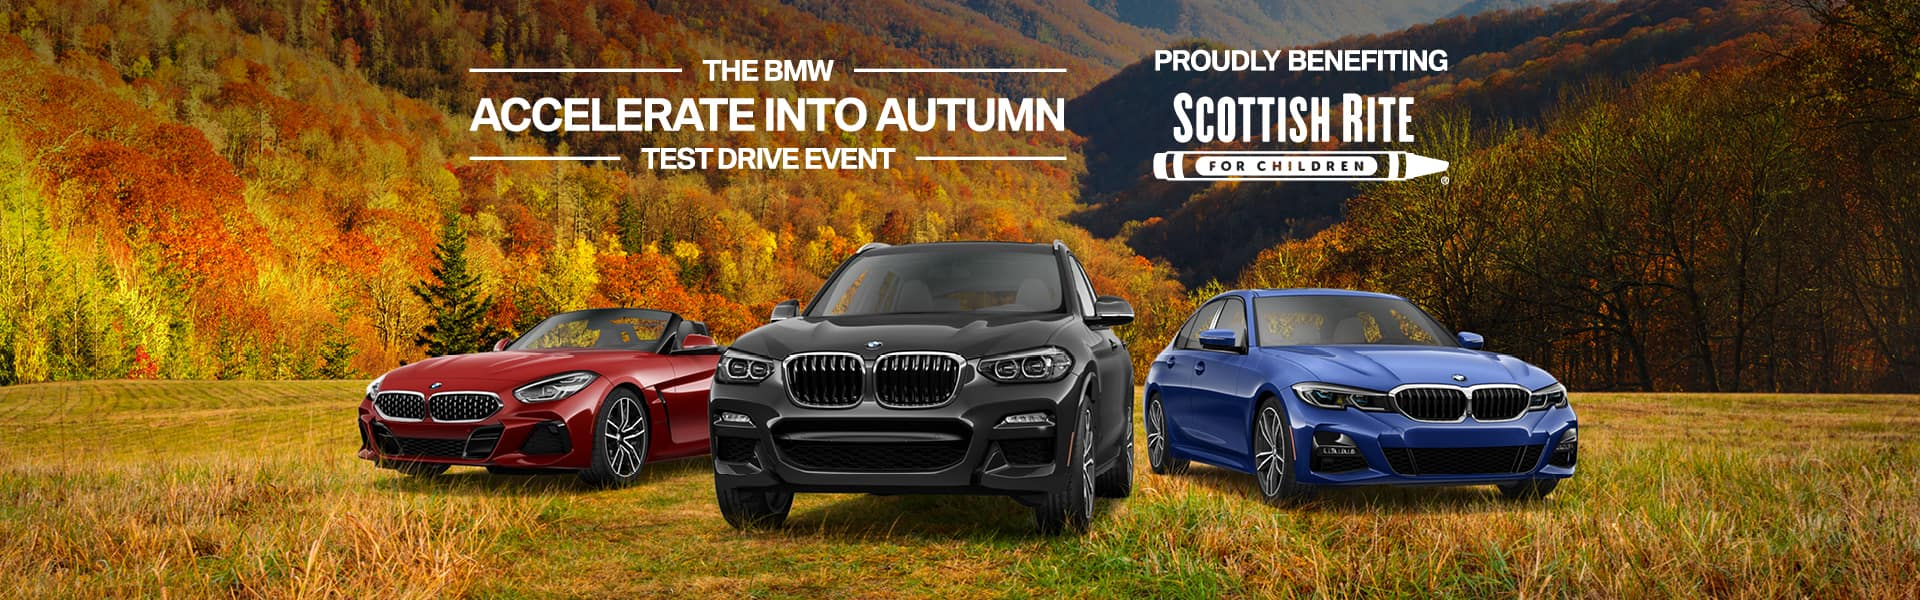 Autobahn BMW Fort Worth | Accelerate into Autumn